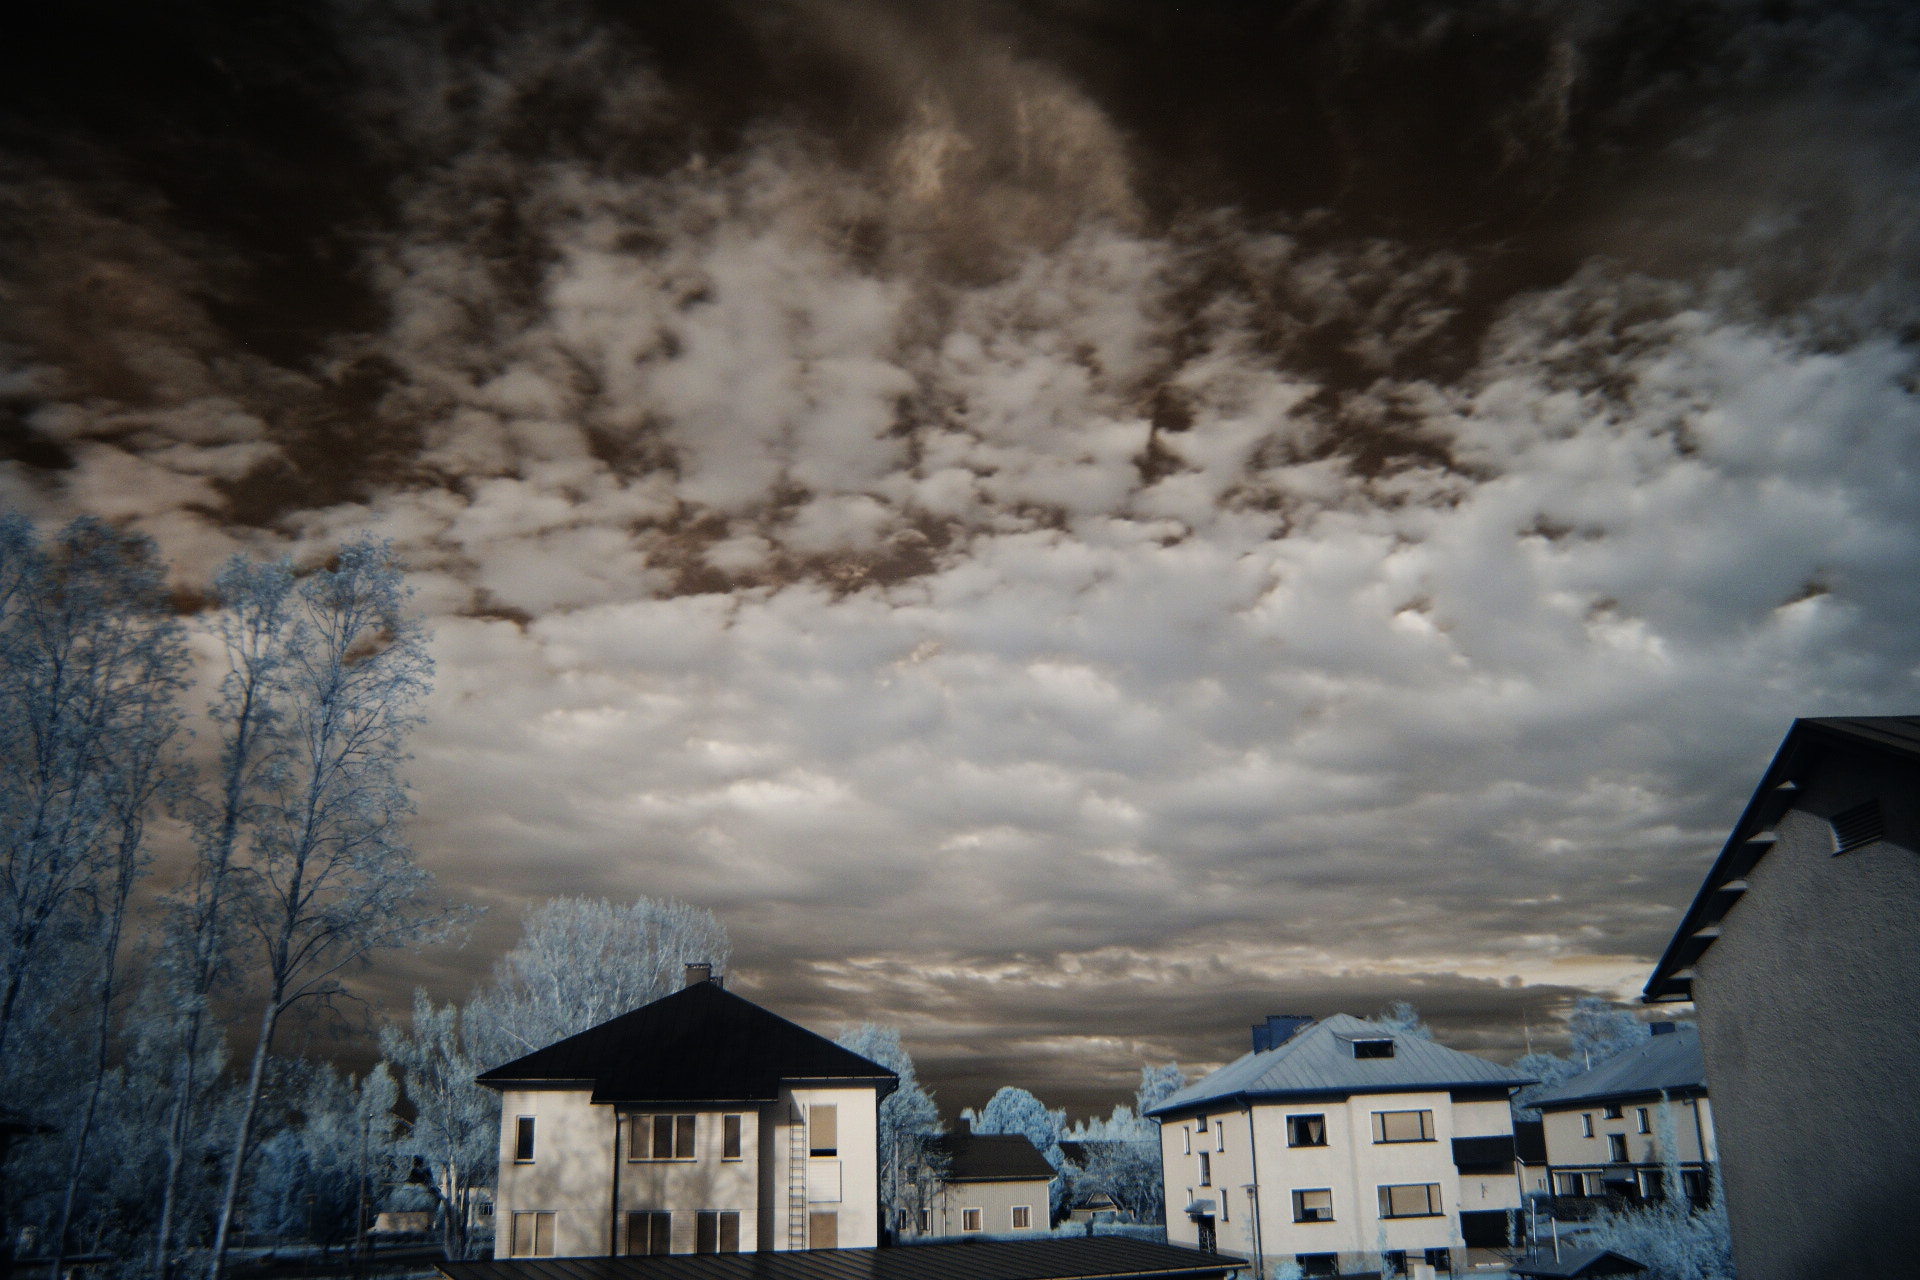 Photograph IR photography  by Azra Ferhatovic on 500px